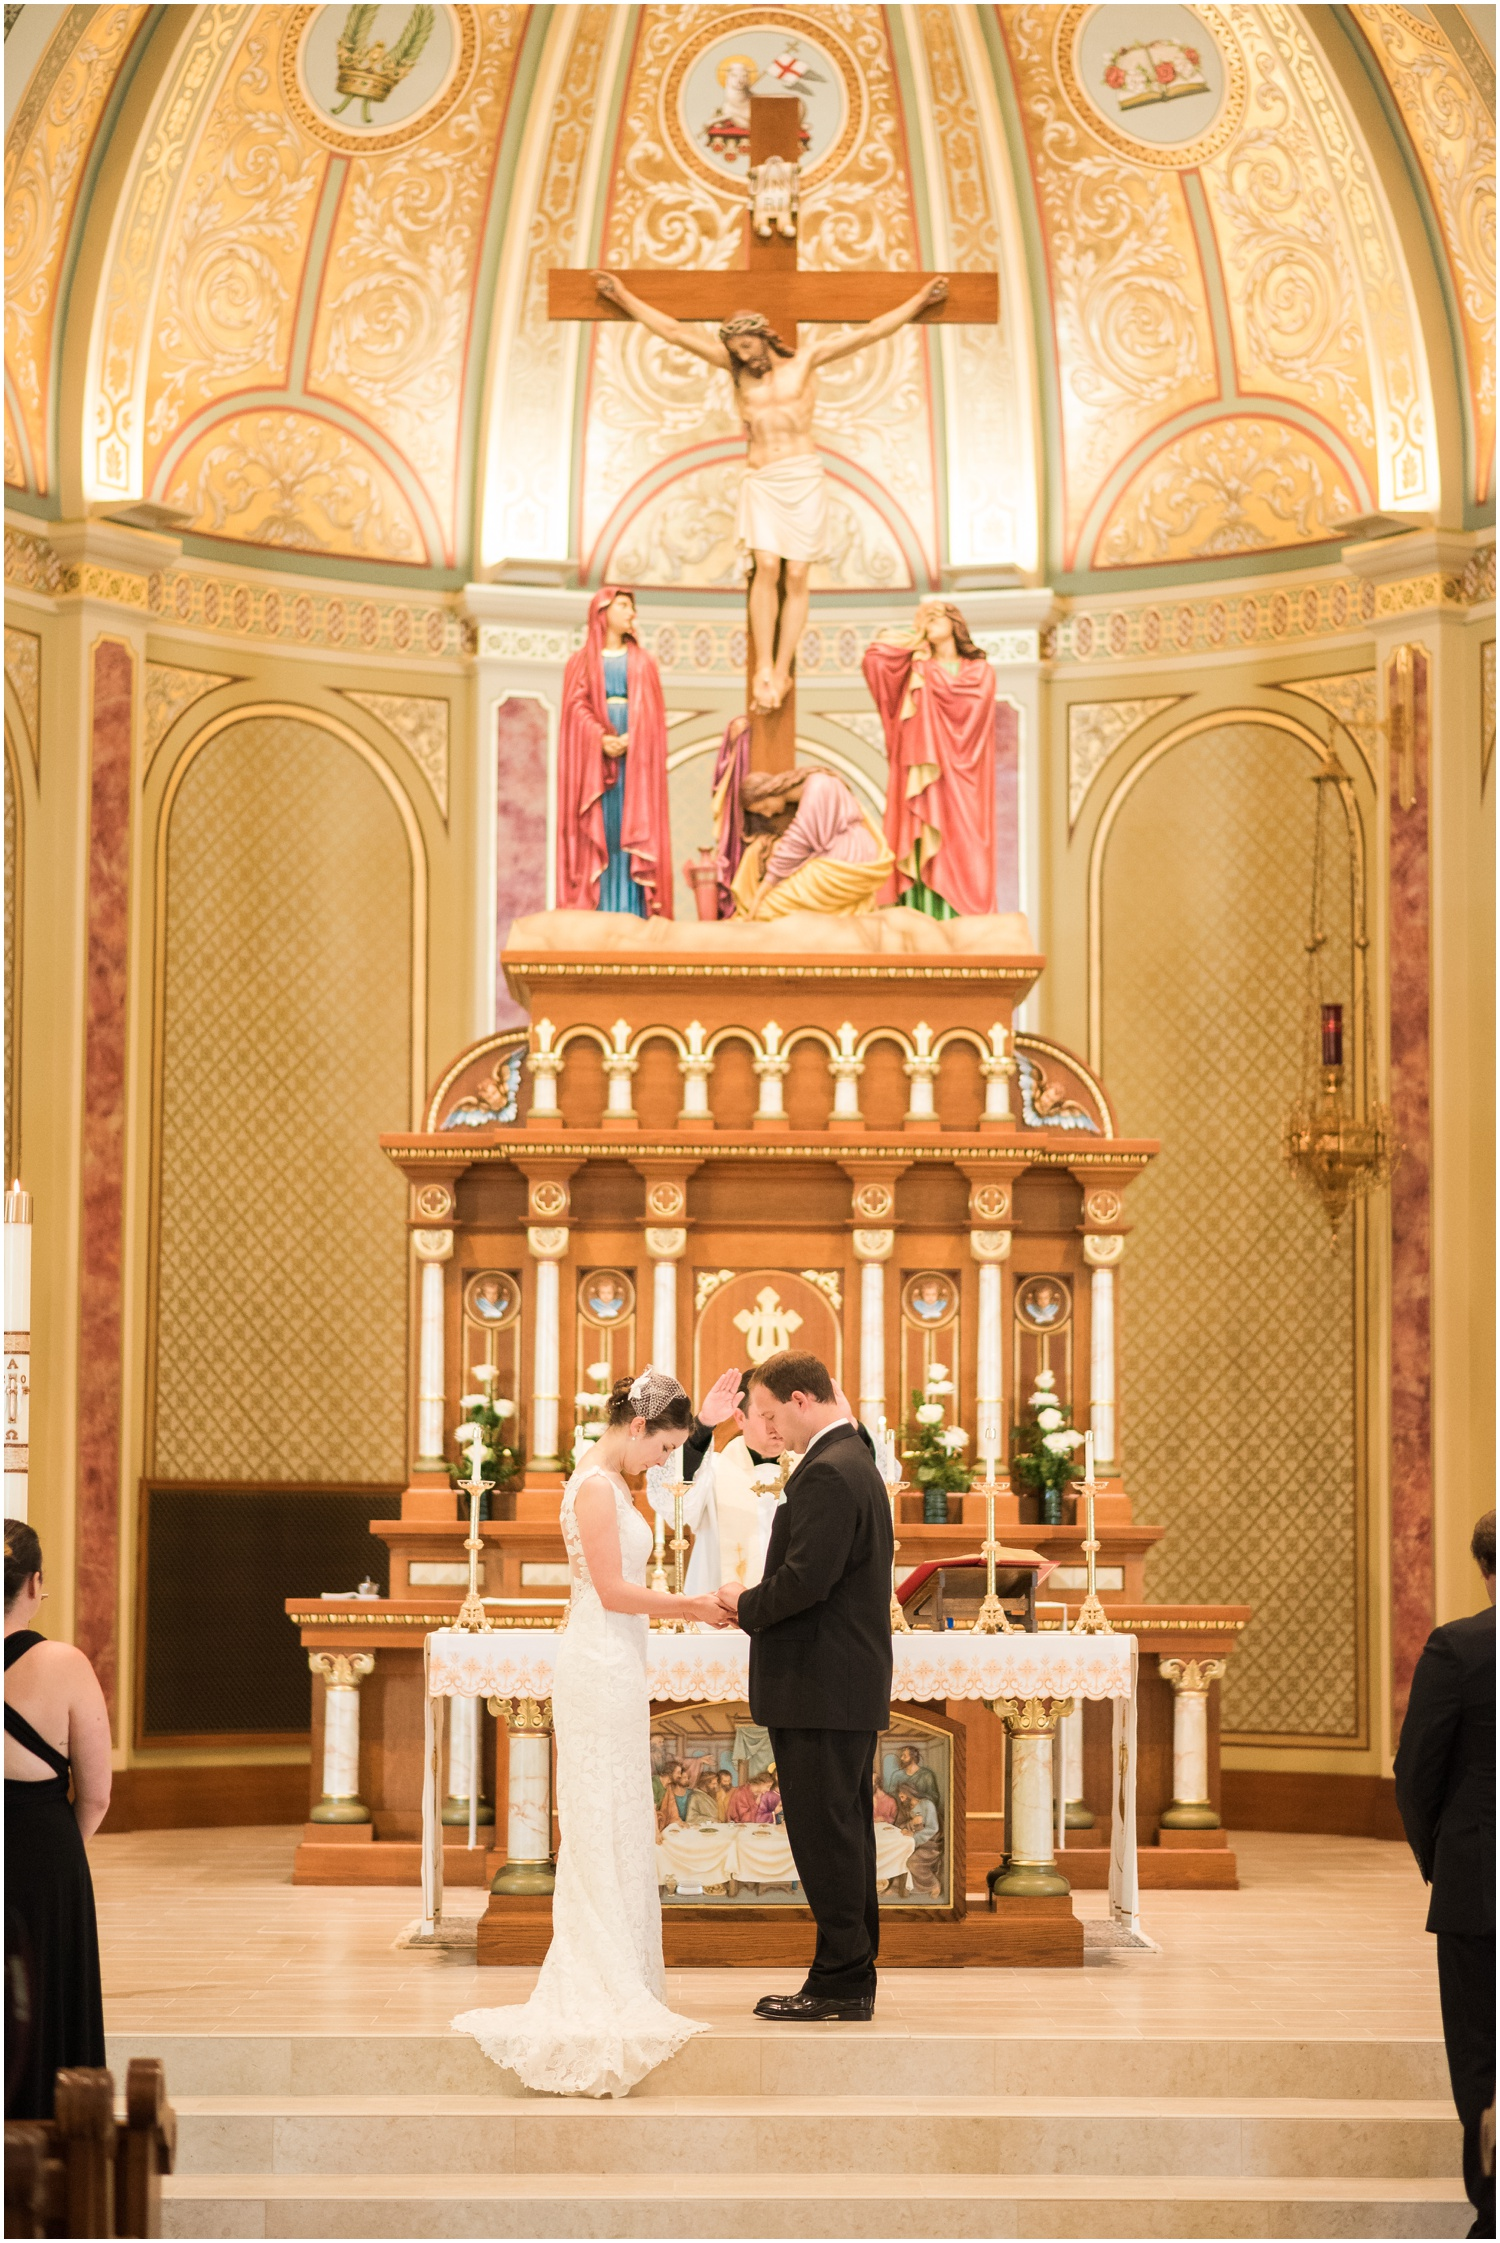 WISCONSIN DELLS WEDDING PHOTOGRAPHER | ST. CECILIA CATHOLIC CHURCH | WISCONSIN DELLS, WI | WEDDING_0244.jpg